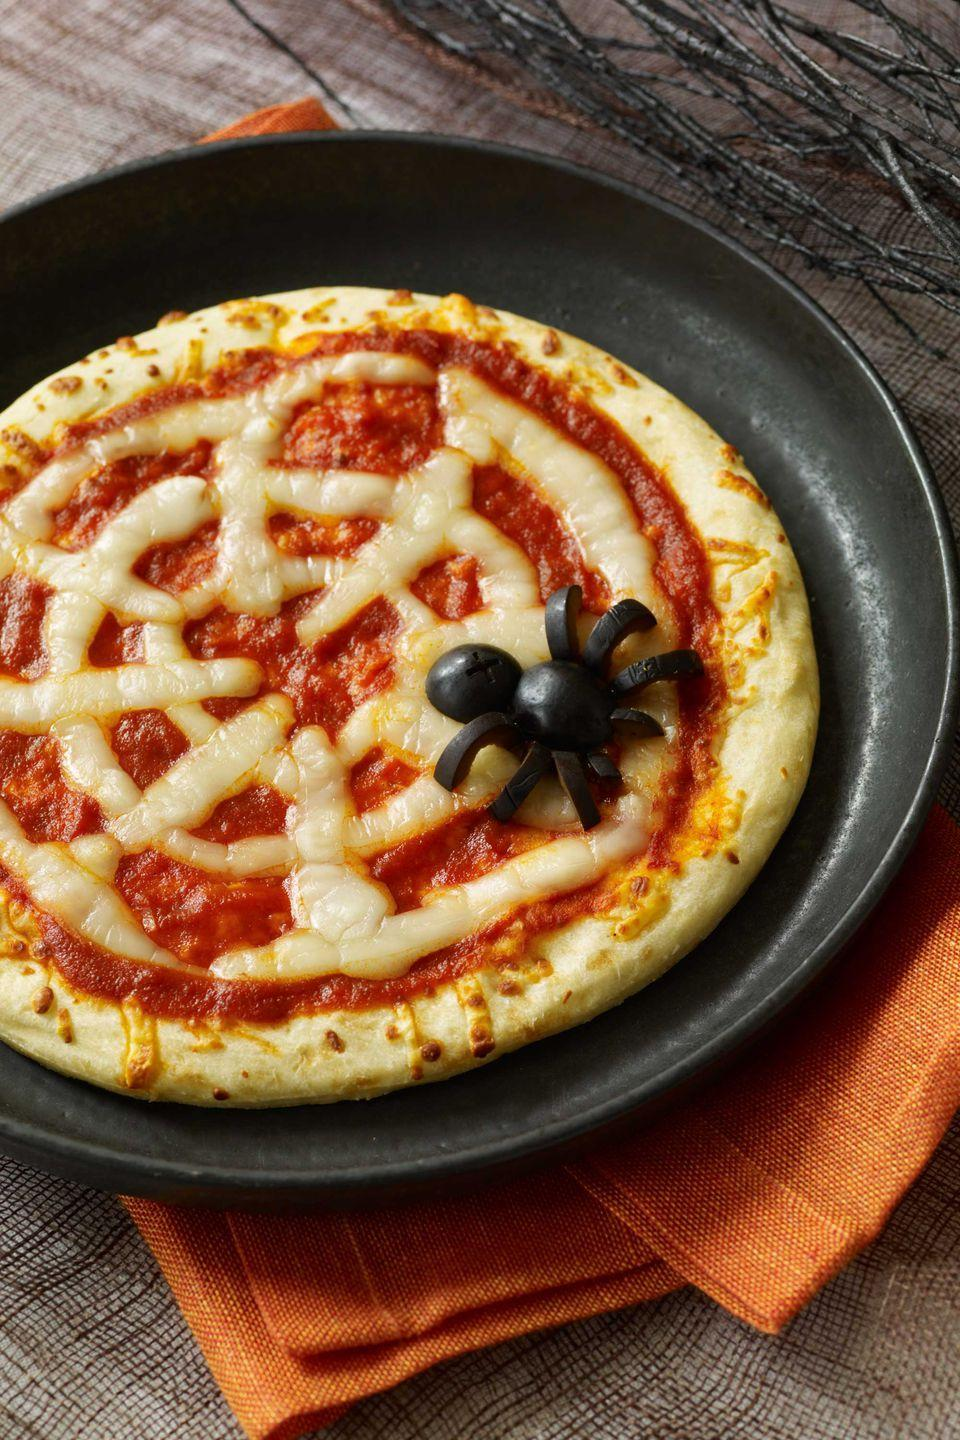 "<p>Serve up a piping hot slice of spookiness with these super-simple pizzas made with pre-baked crust, pizza sauce, strategically placed string cheese and a black olive spider.</p><p><a href=""https://www.womansday.com/food-recipes/food-drinks/recipes/a10838/spiderweb-pizzas-recipe-122166/"" rel=""nofollow noopener"" target=""_blank"" data-ylk=""slk:Get the recipe."" class=""link rapid-noclick-resp""><strong>Get the recipe.</strong></a></p>"